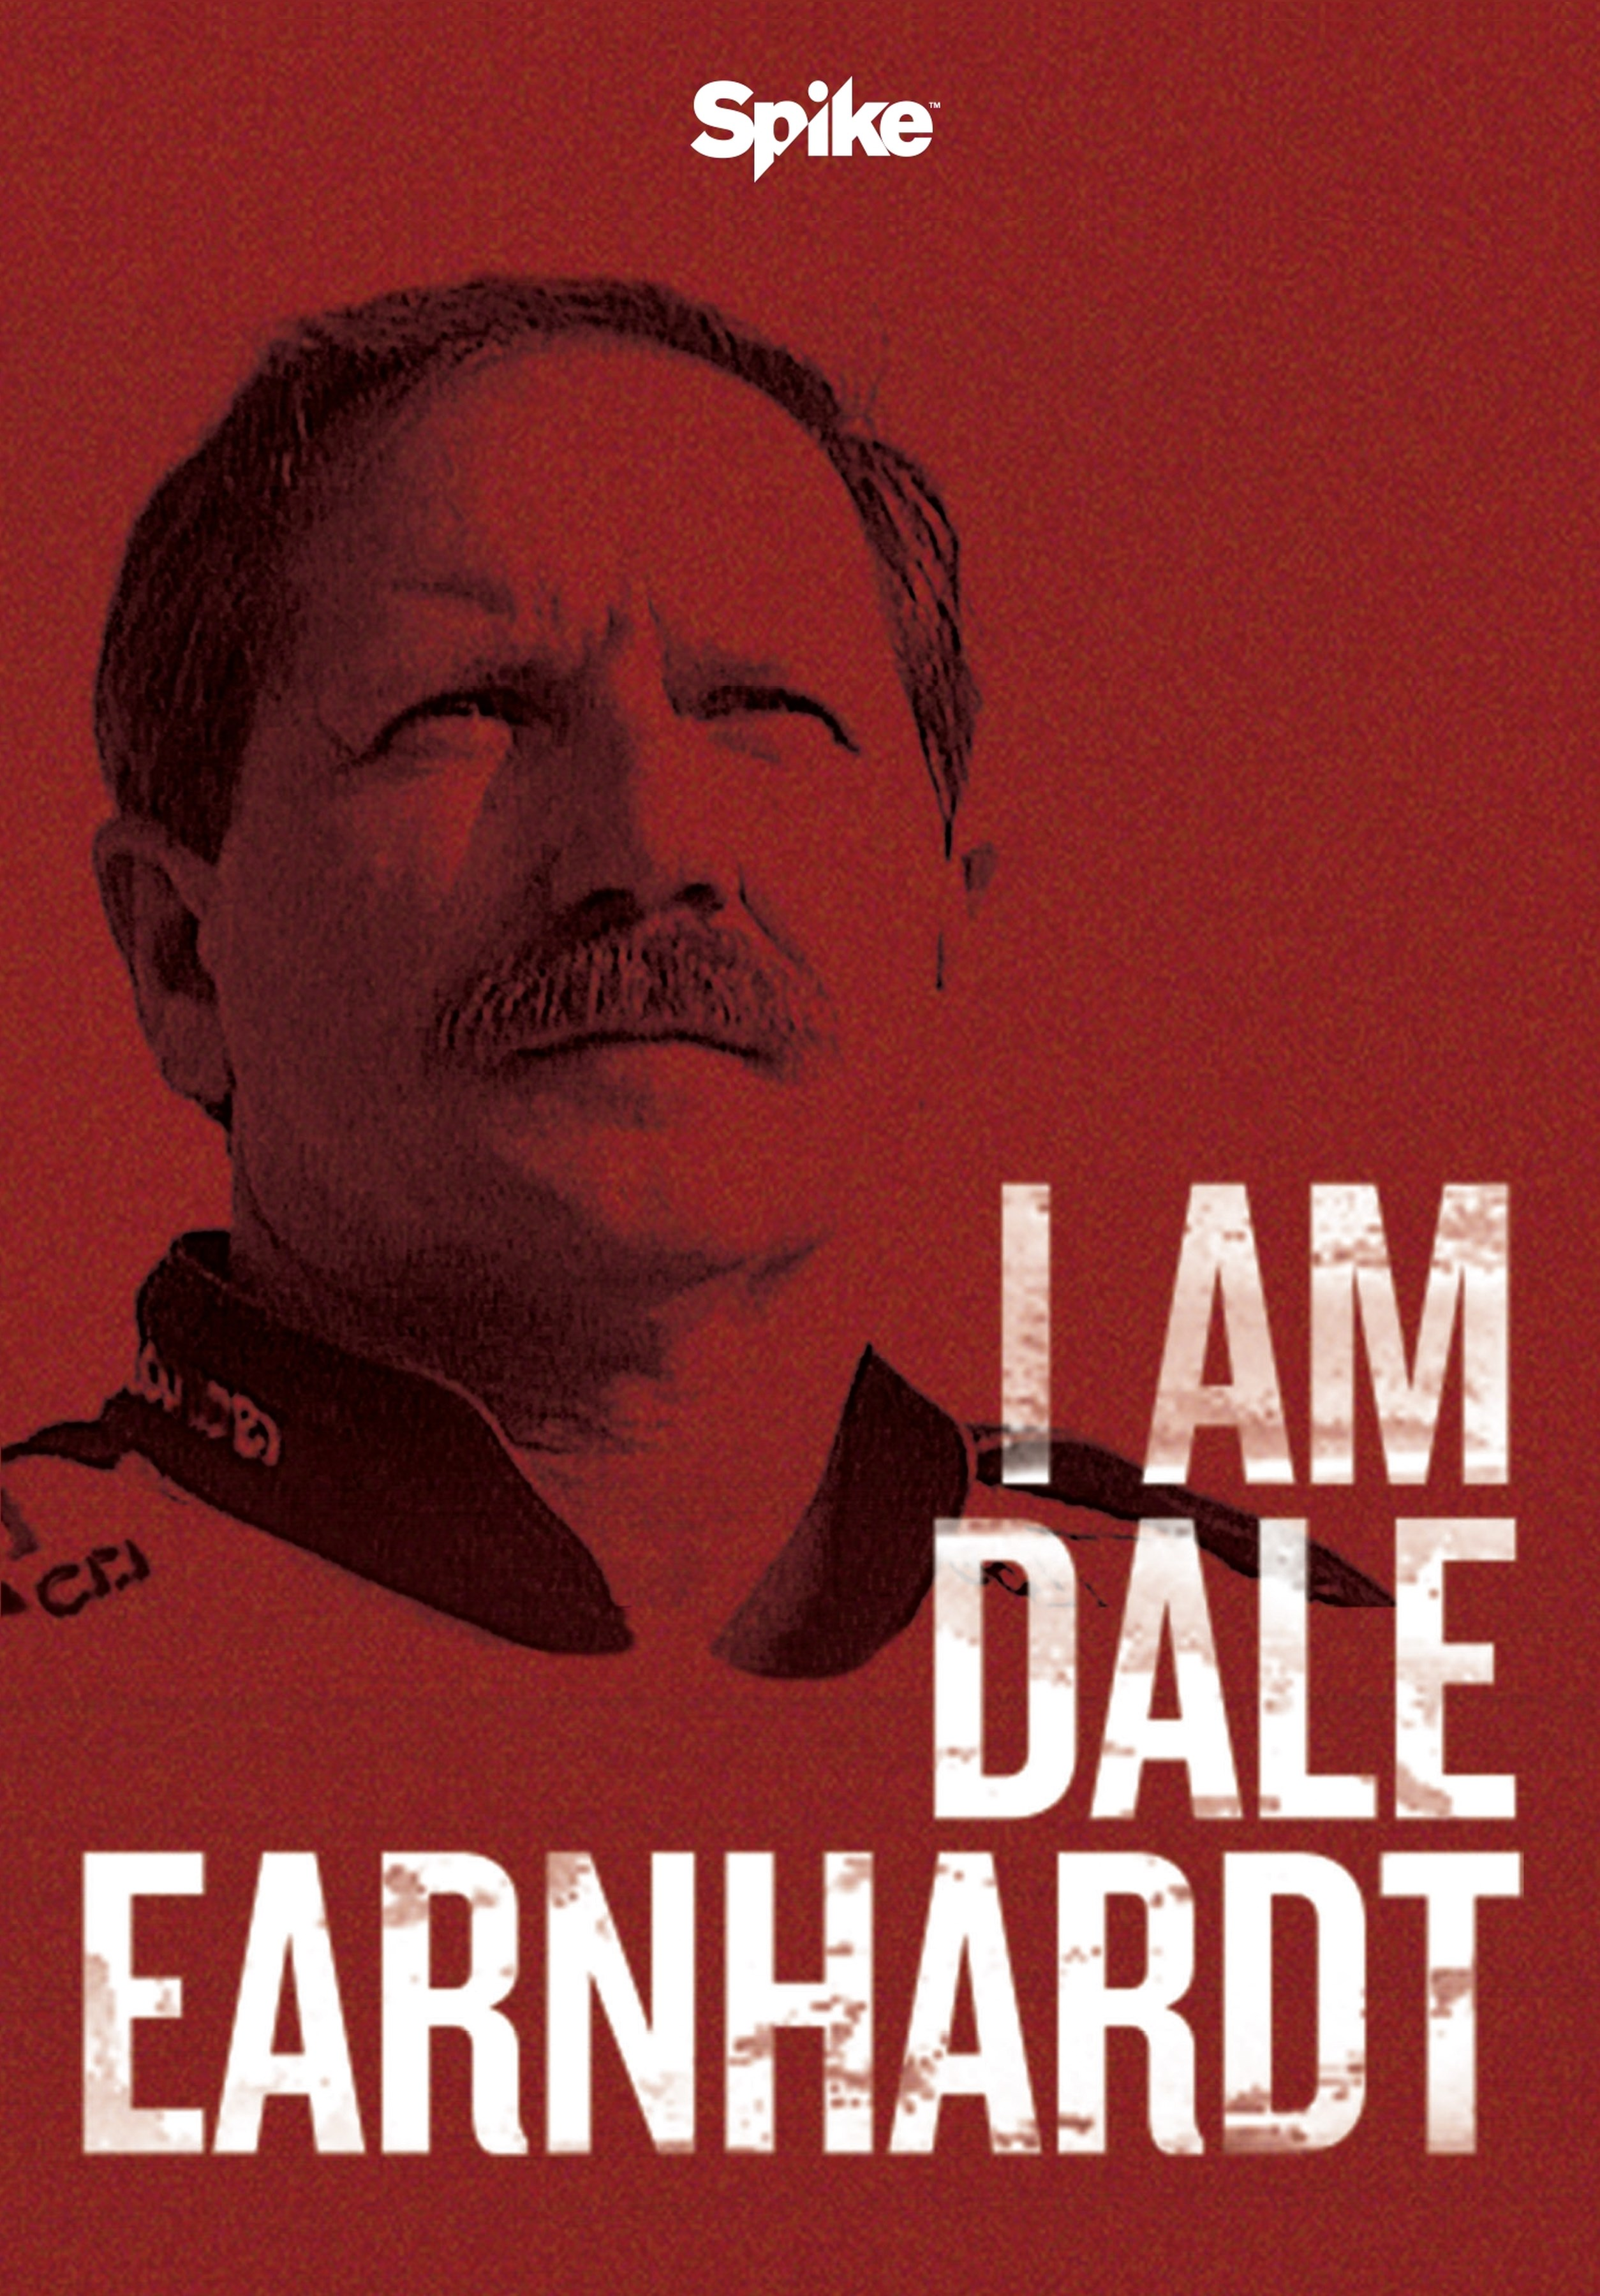 I am Dale Earnhardt DVD Review